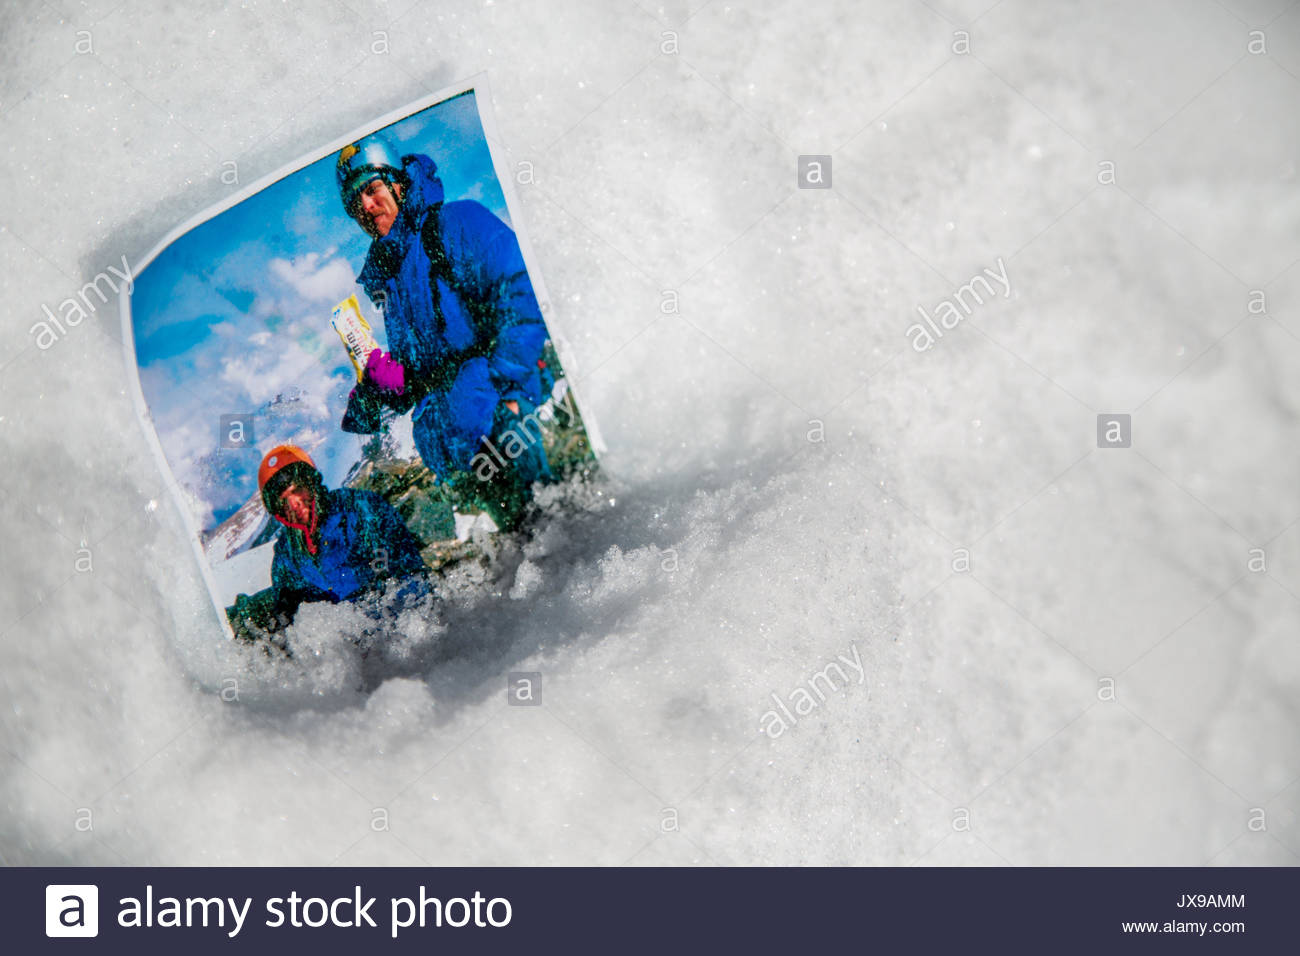 A photograph of an expedition team member's climbing partners, now deceased, left in the snow at the team's highpoint on Hkakabo Razi, said to be Southeast Asia's tallest mountain. - Stock Image